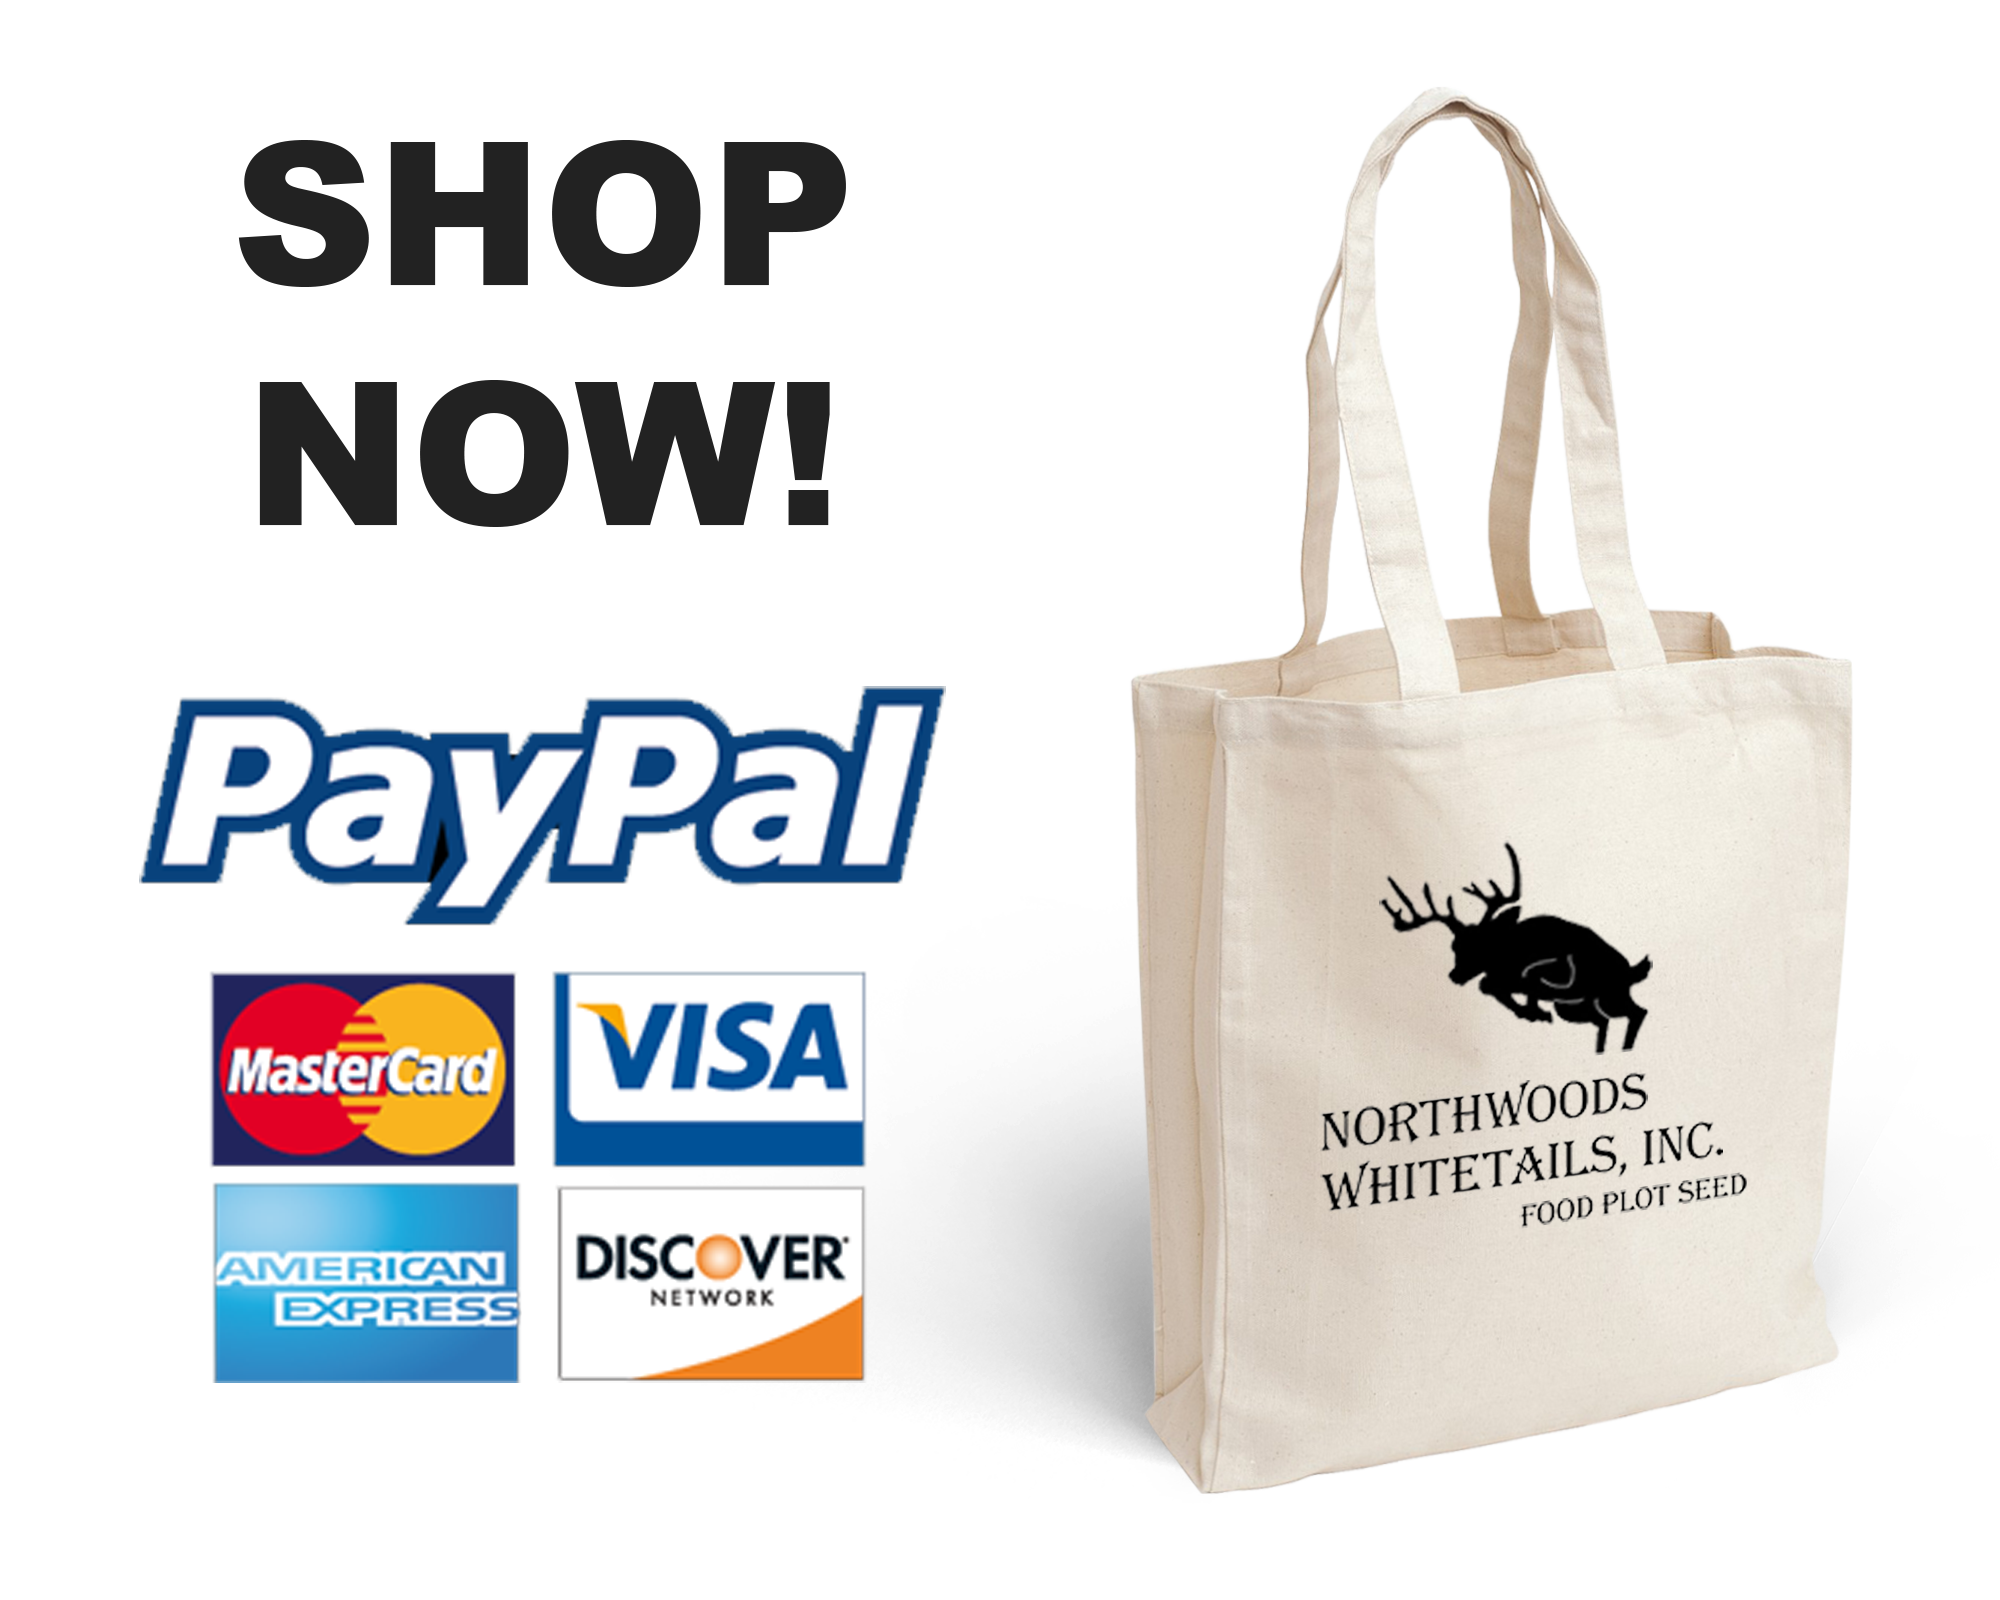 Shop Now - We accept Paypal, Visa, Master Card, American Express, & Discover Card